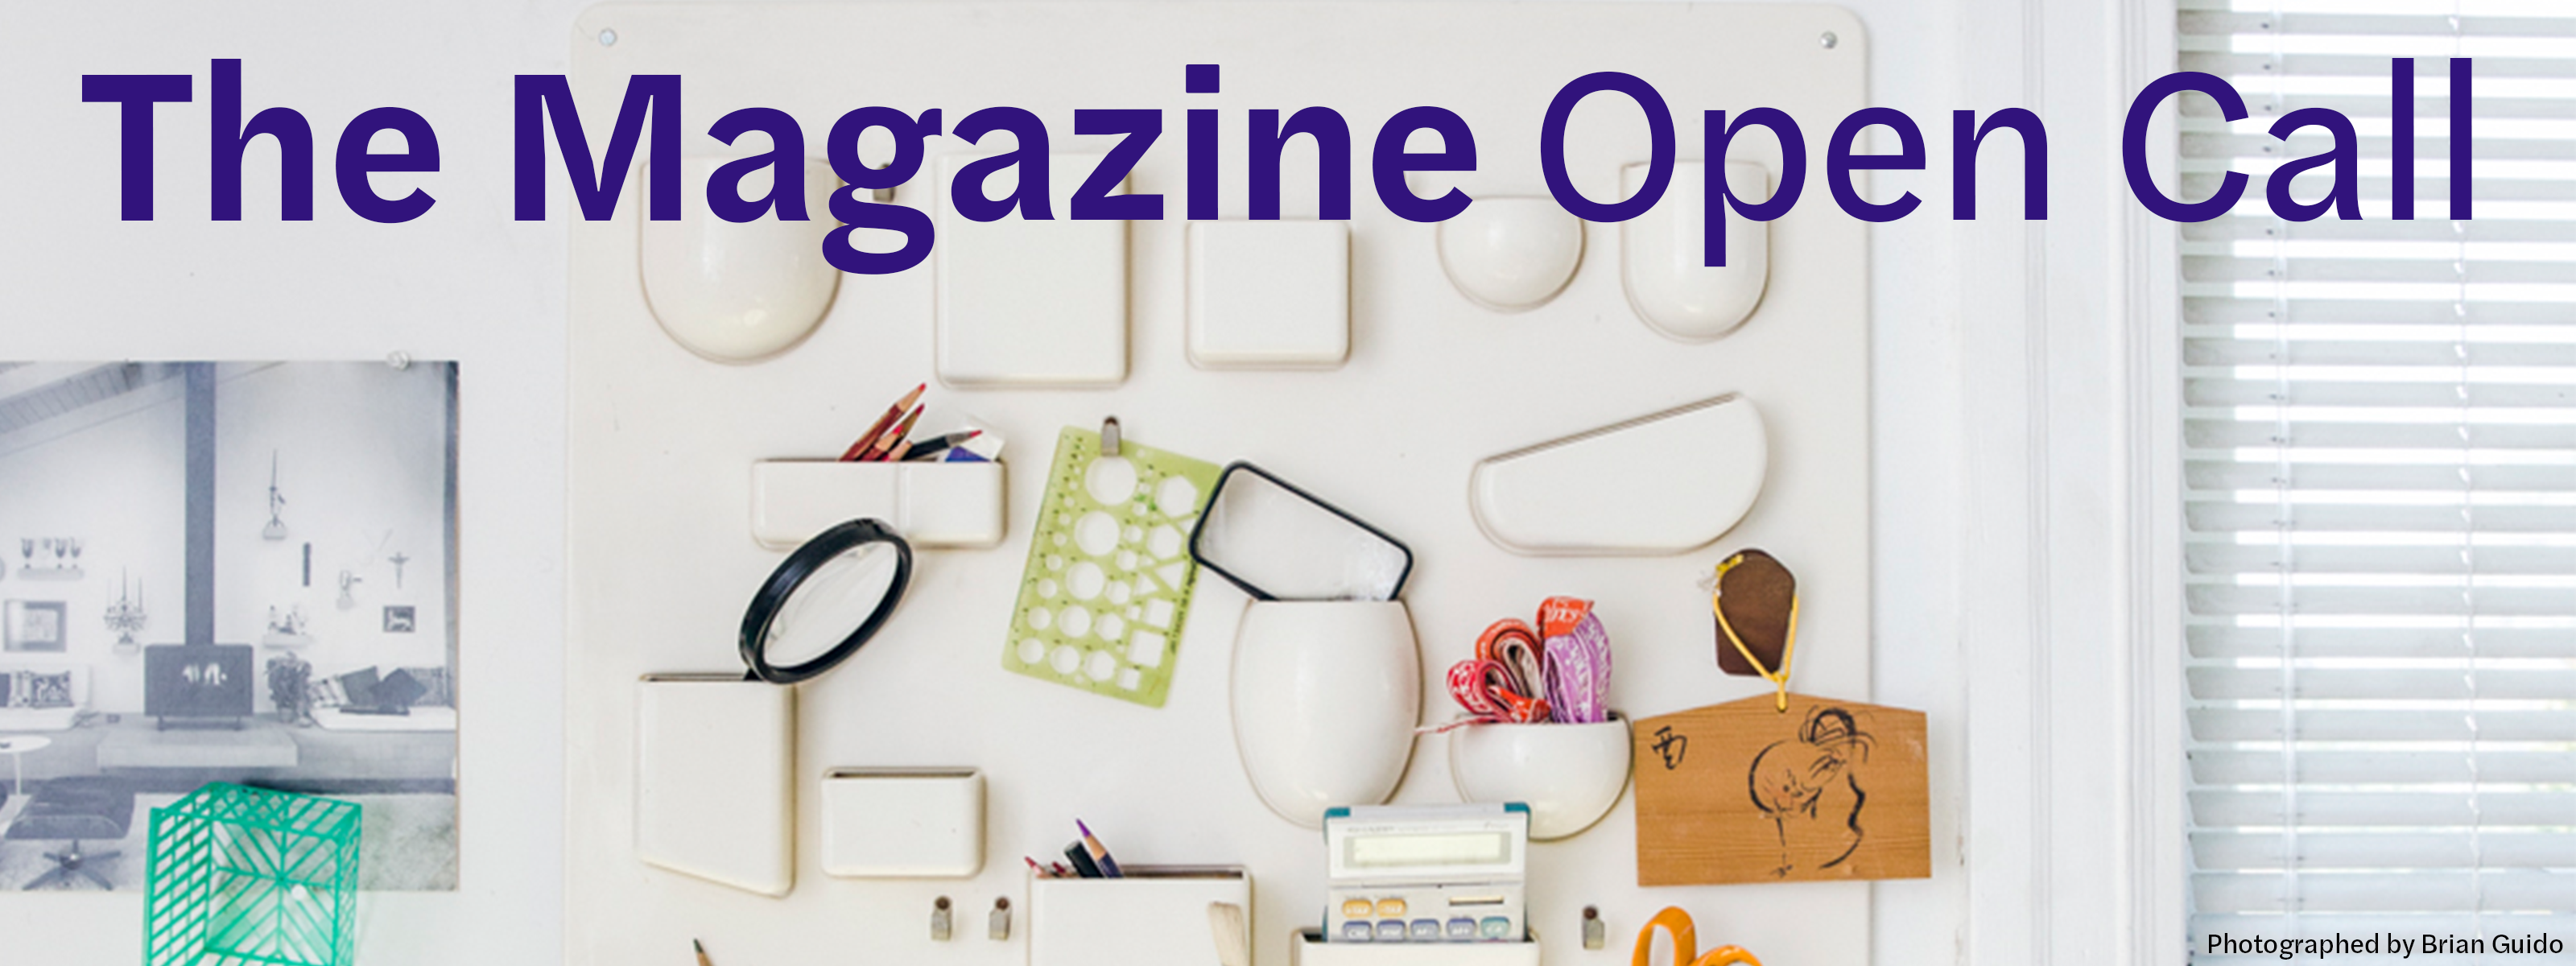 The Magazine Open Call